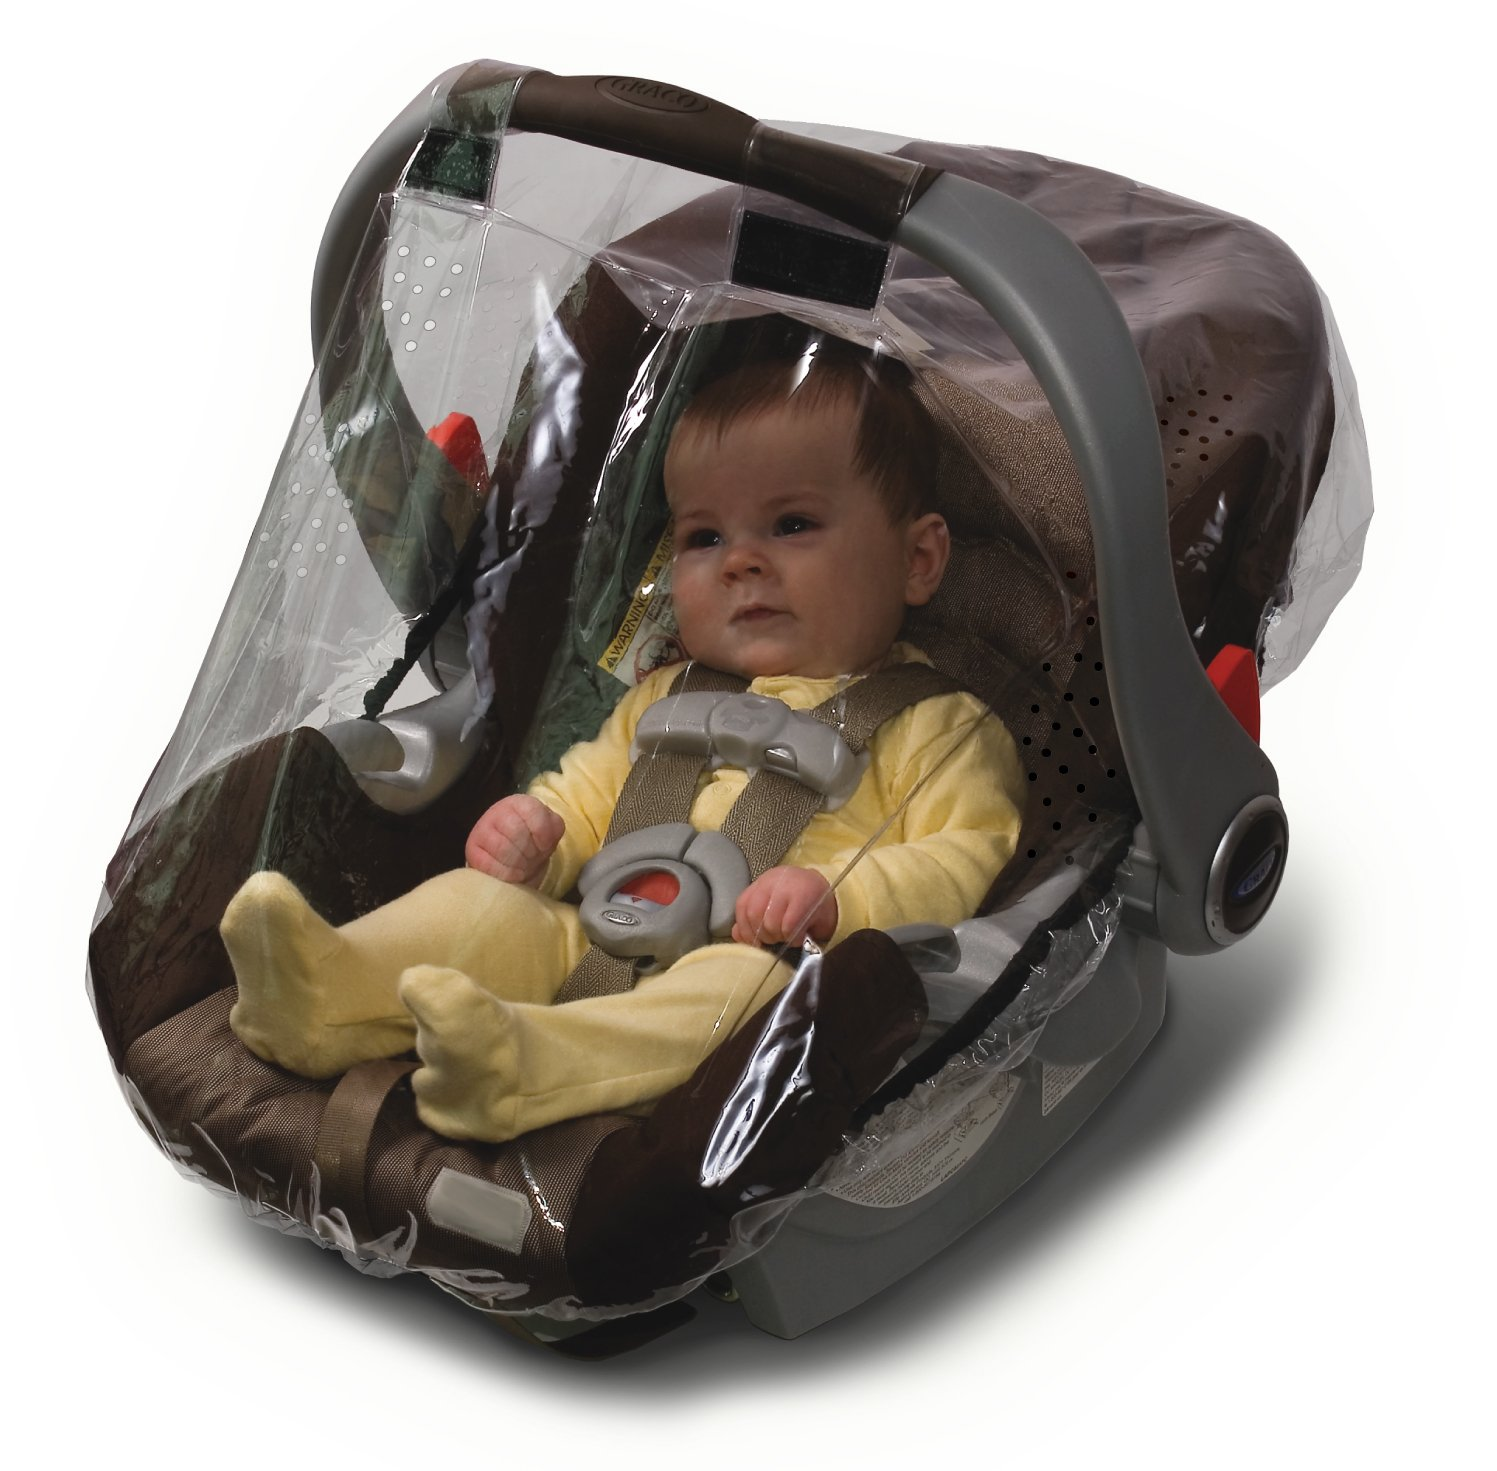 Jolly Jumper Weathershield for Infant Car Seat by Jolly Jumper